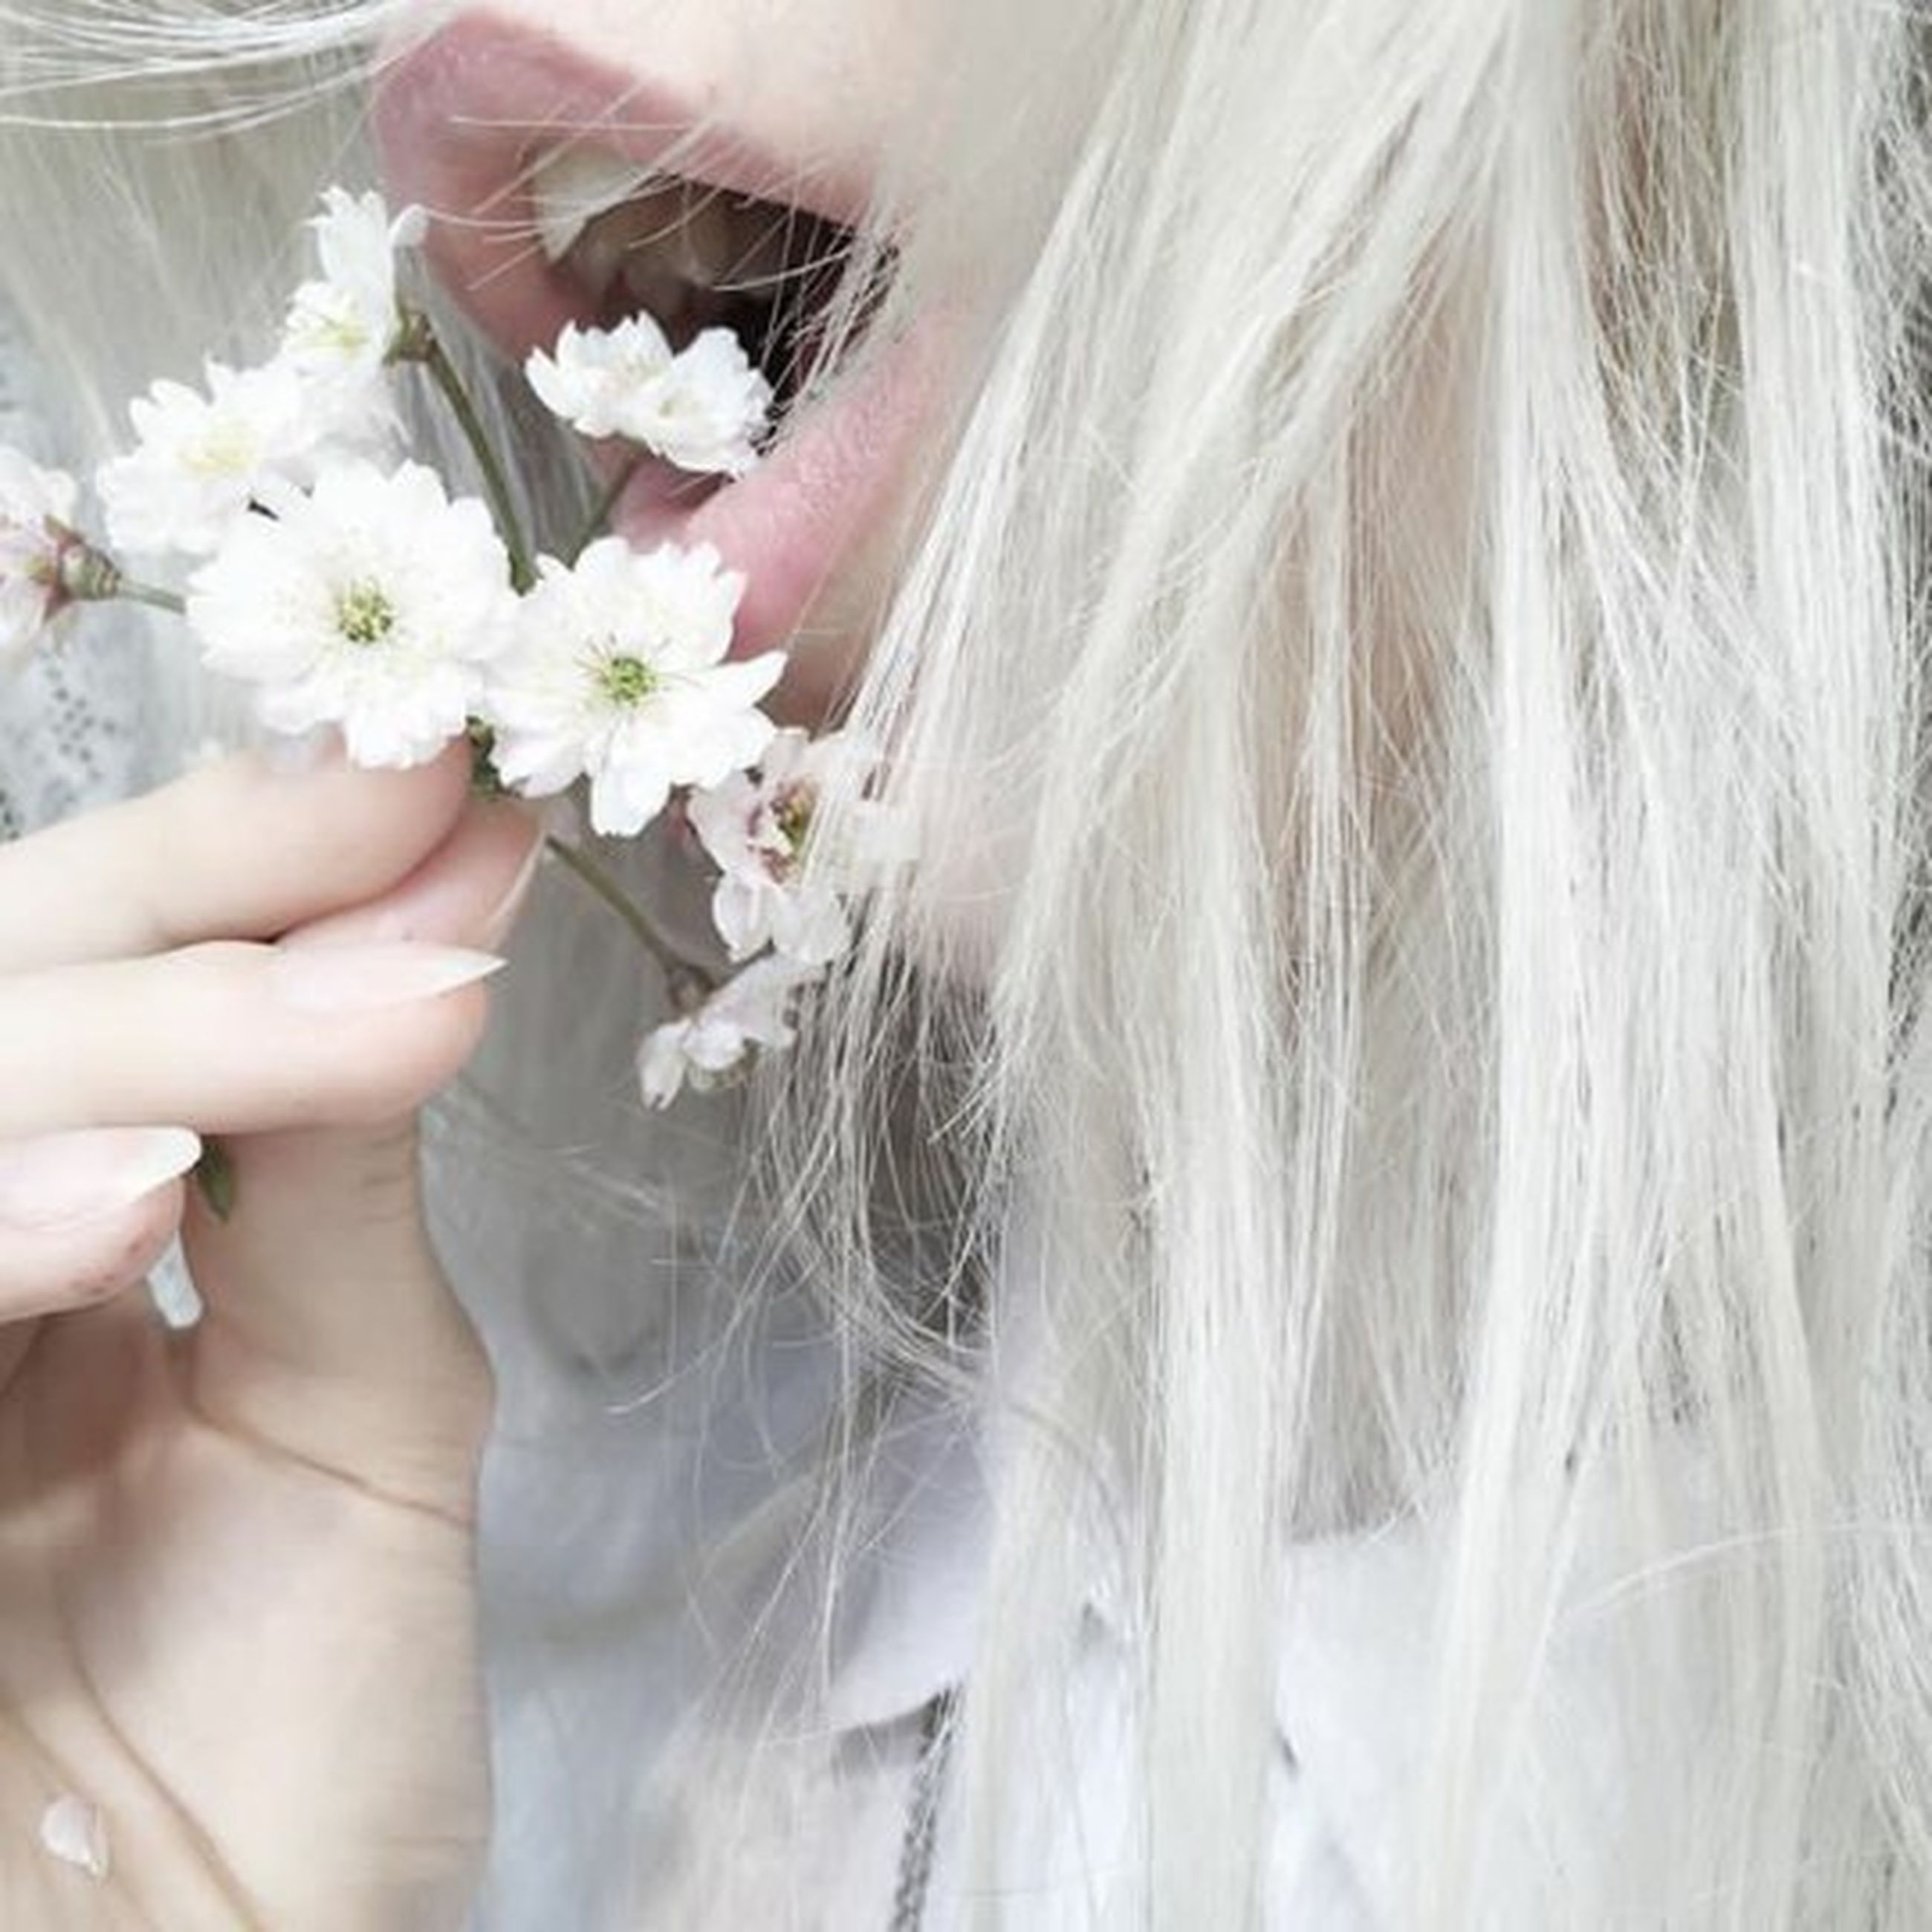 flower, human body part, one person, blond hair, only women, one woman only, adults only, human hand, adult, fragility, people, close-up, holding, young adult, outdoors, sensory perception, women, bride, one young woman only, day, wedding dress, freshness, beautiful woman, flower head